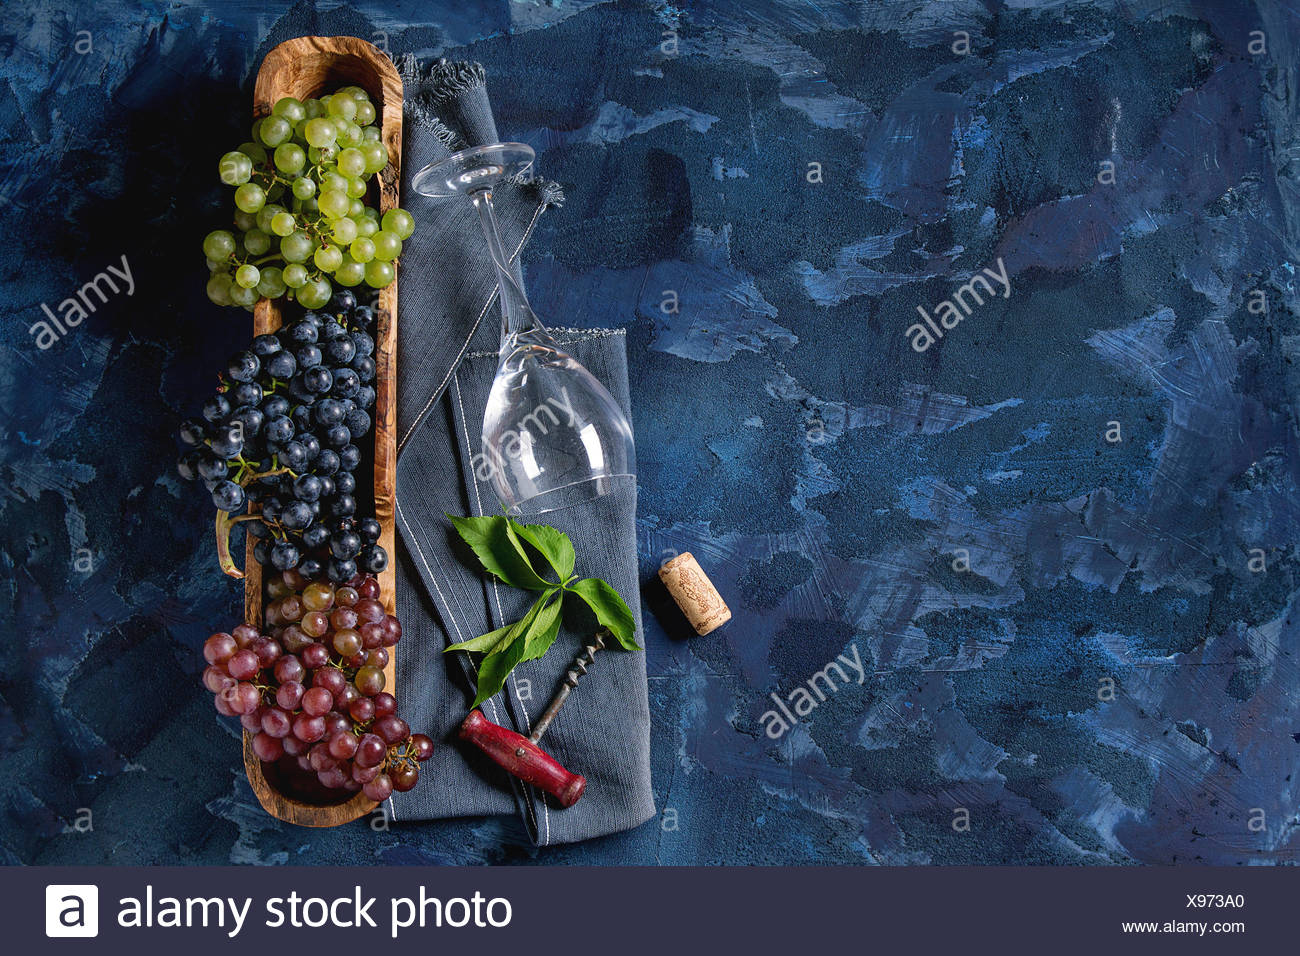 Variety of three type fresh ripe grapes dark blue, red and green in wooden bowl with empty laying wine glass, old corkscrew and green leaves over blue - Stock Image